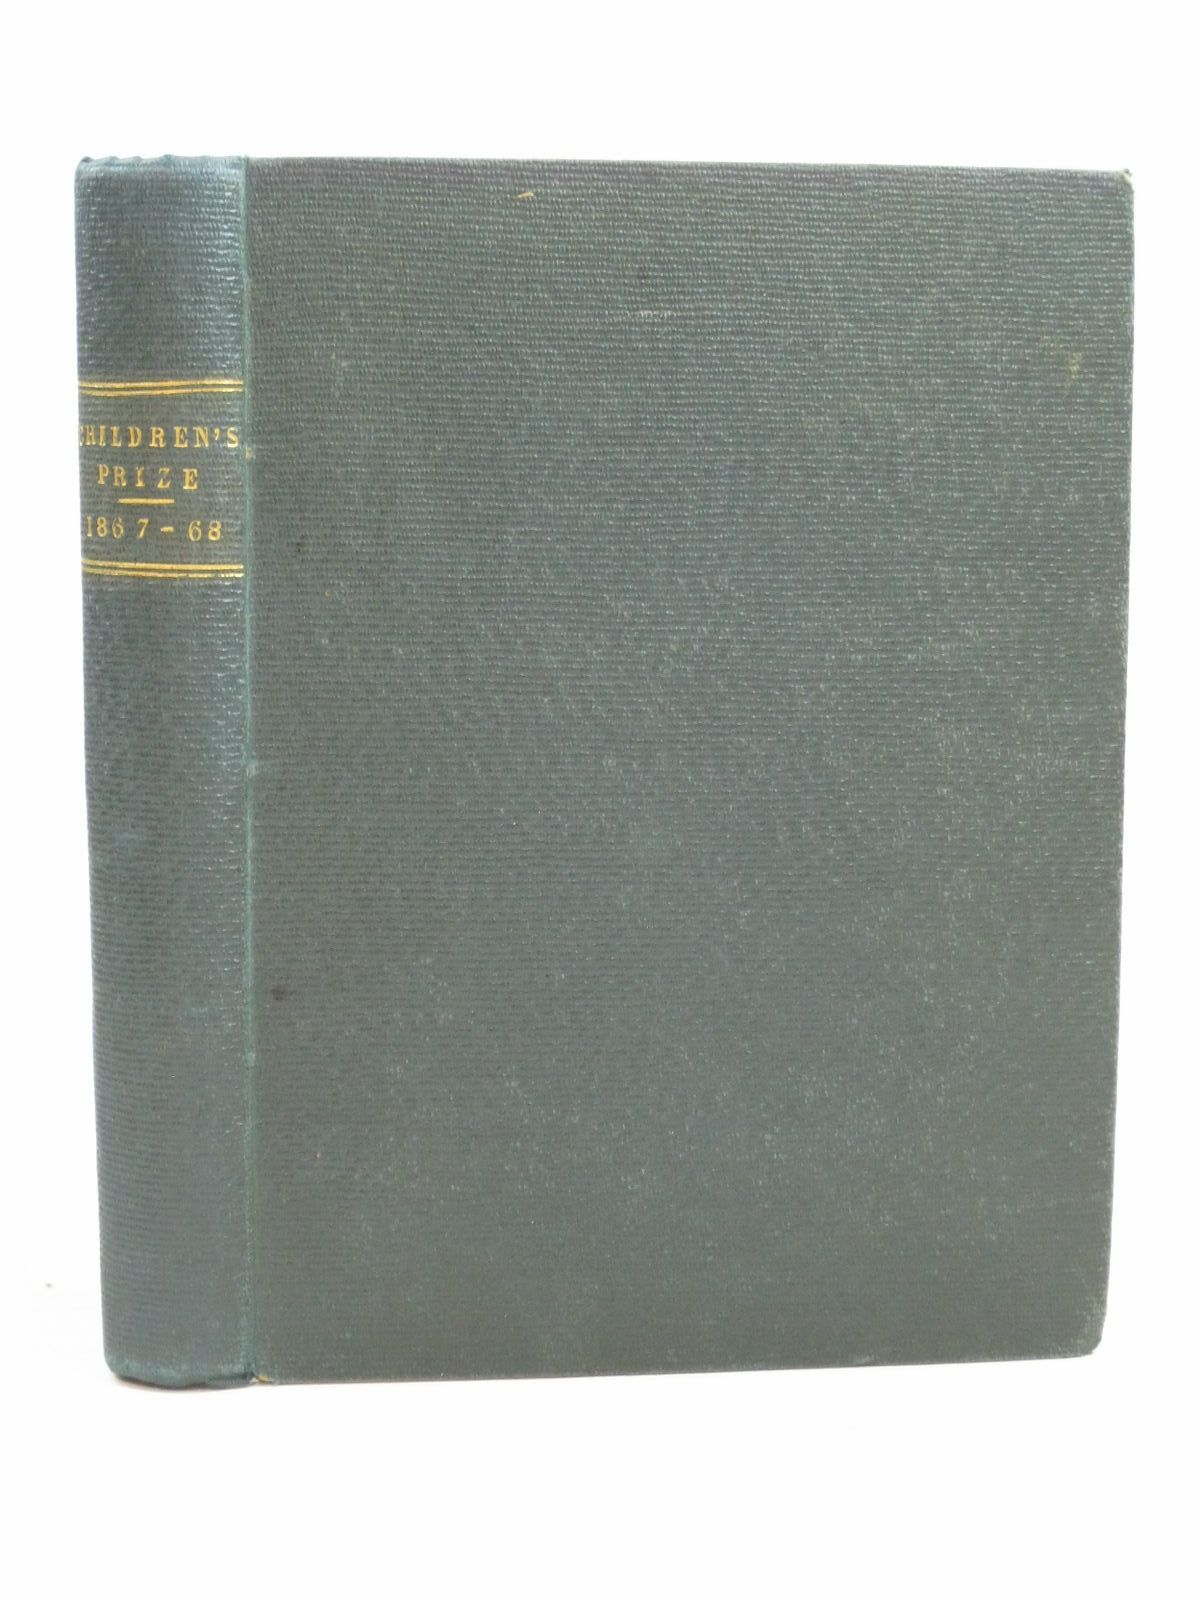 Photo of THE CHILDREN'S PRIZE 1867 - 68 written by Clarke, J. Erskine published by William Macintosh (STOCK CODE: 1404850)  for sale by Stella & Rose's Books